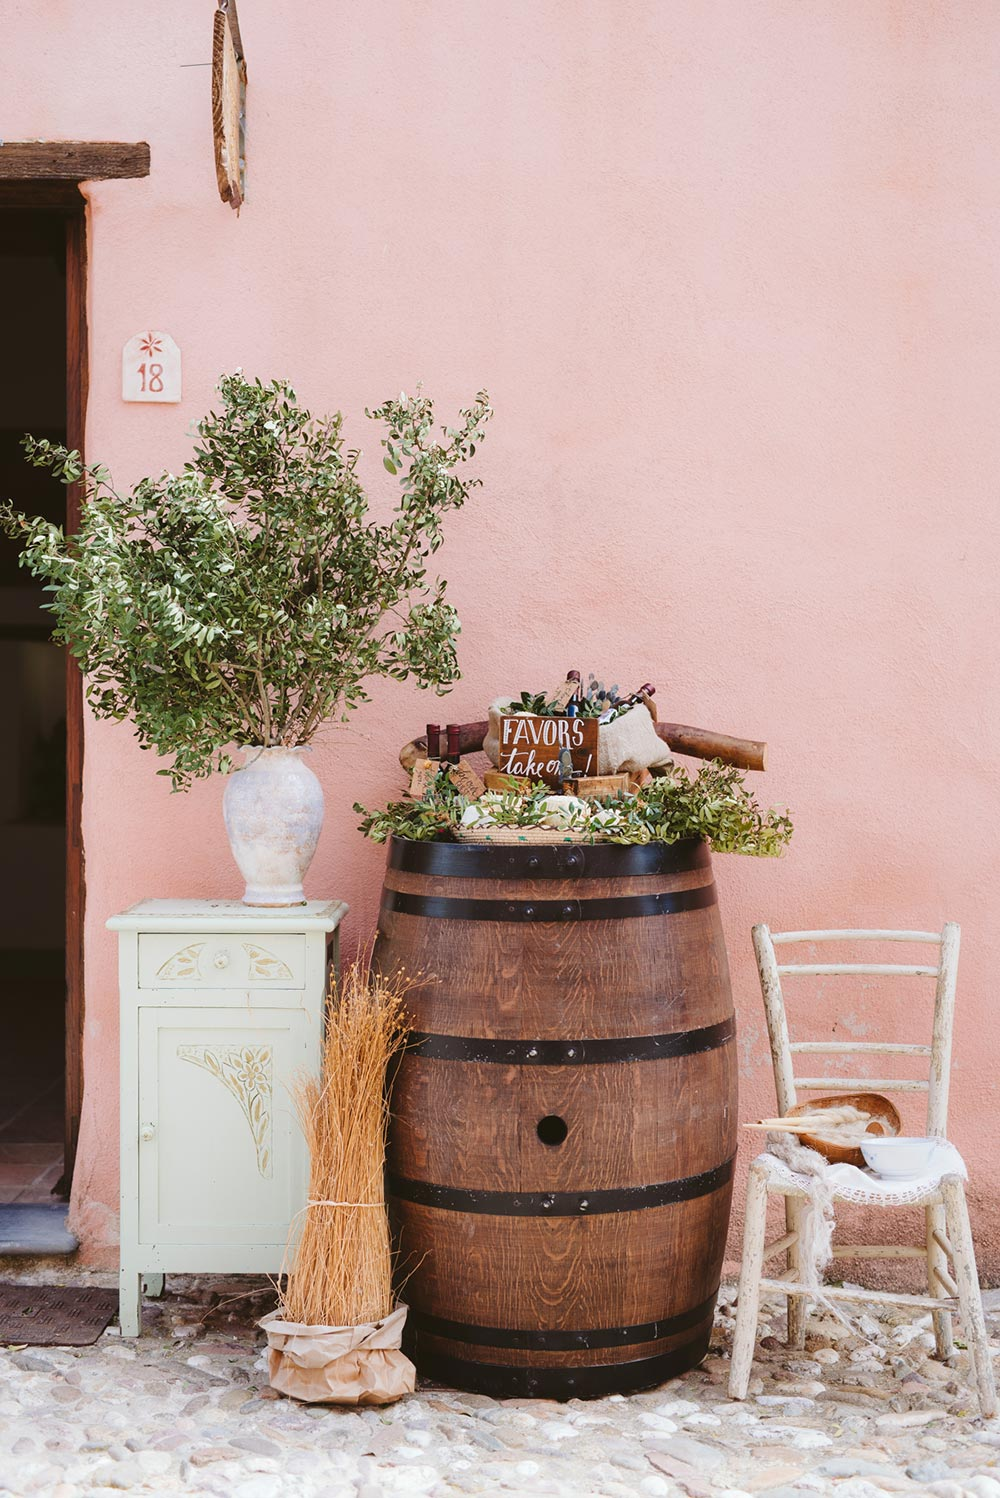 rustic chic wedding favor display on naked barrel